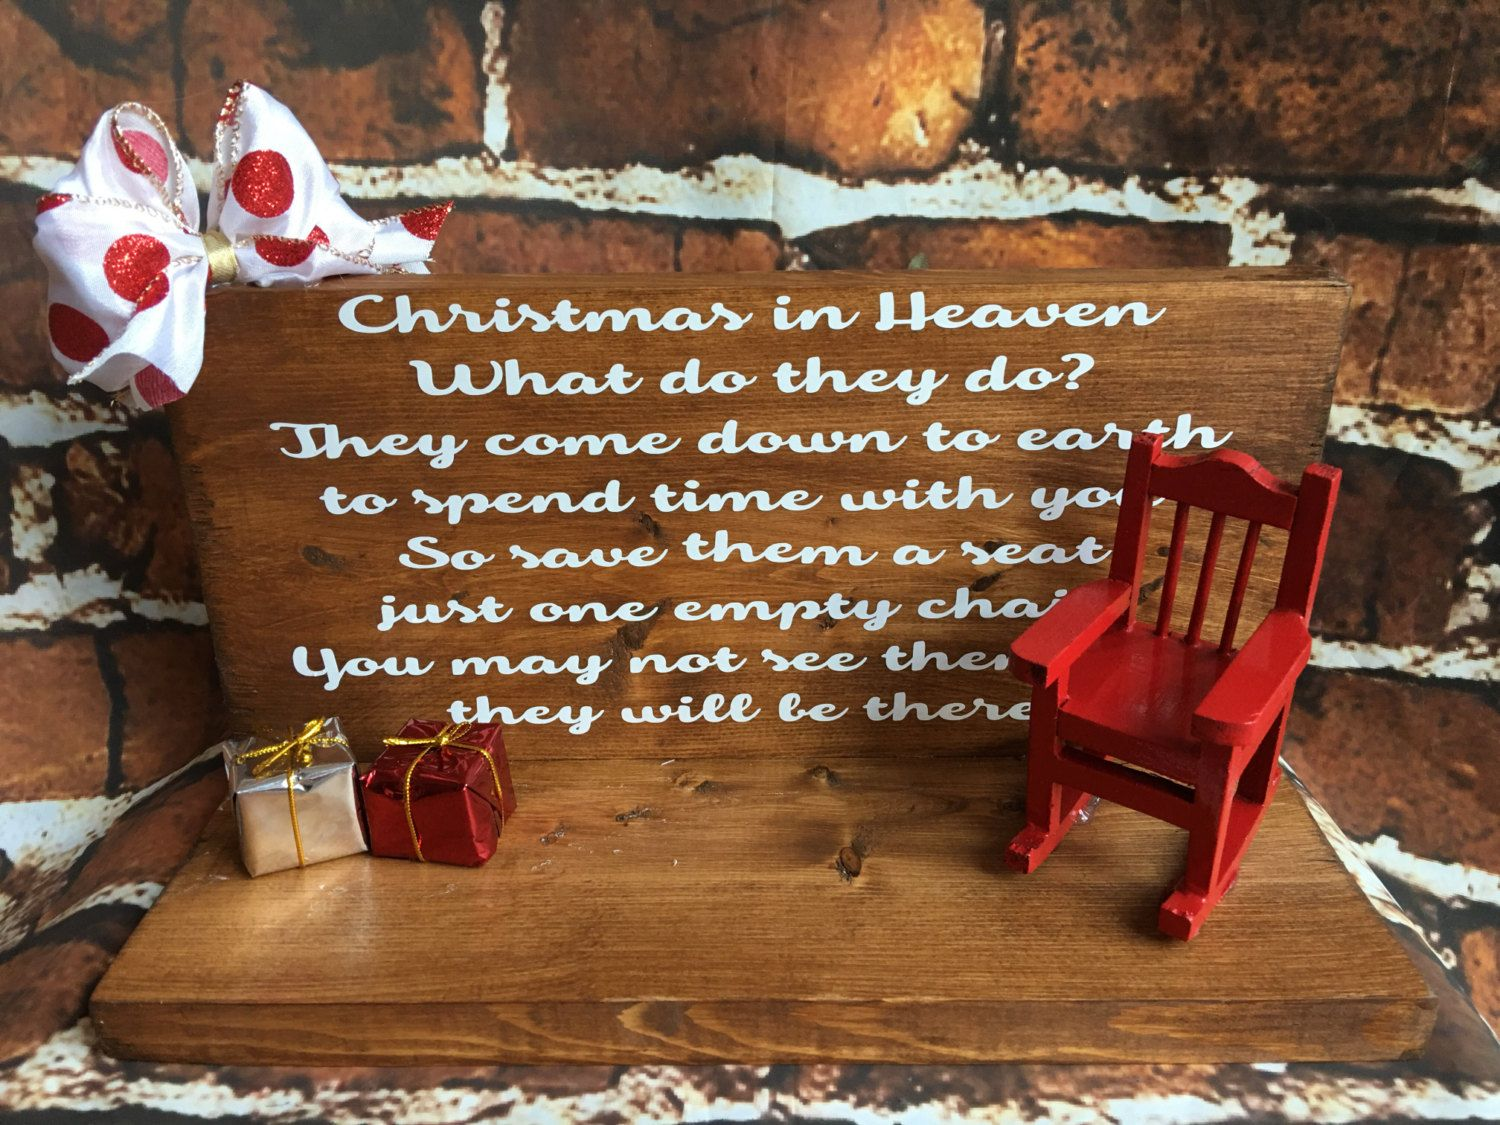 Christmas Wooden Christmas Memories Hanging Sign Sold Out - Christmas in heaven save a seat plaque by expressionallyforyou on etsy